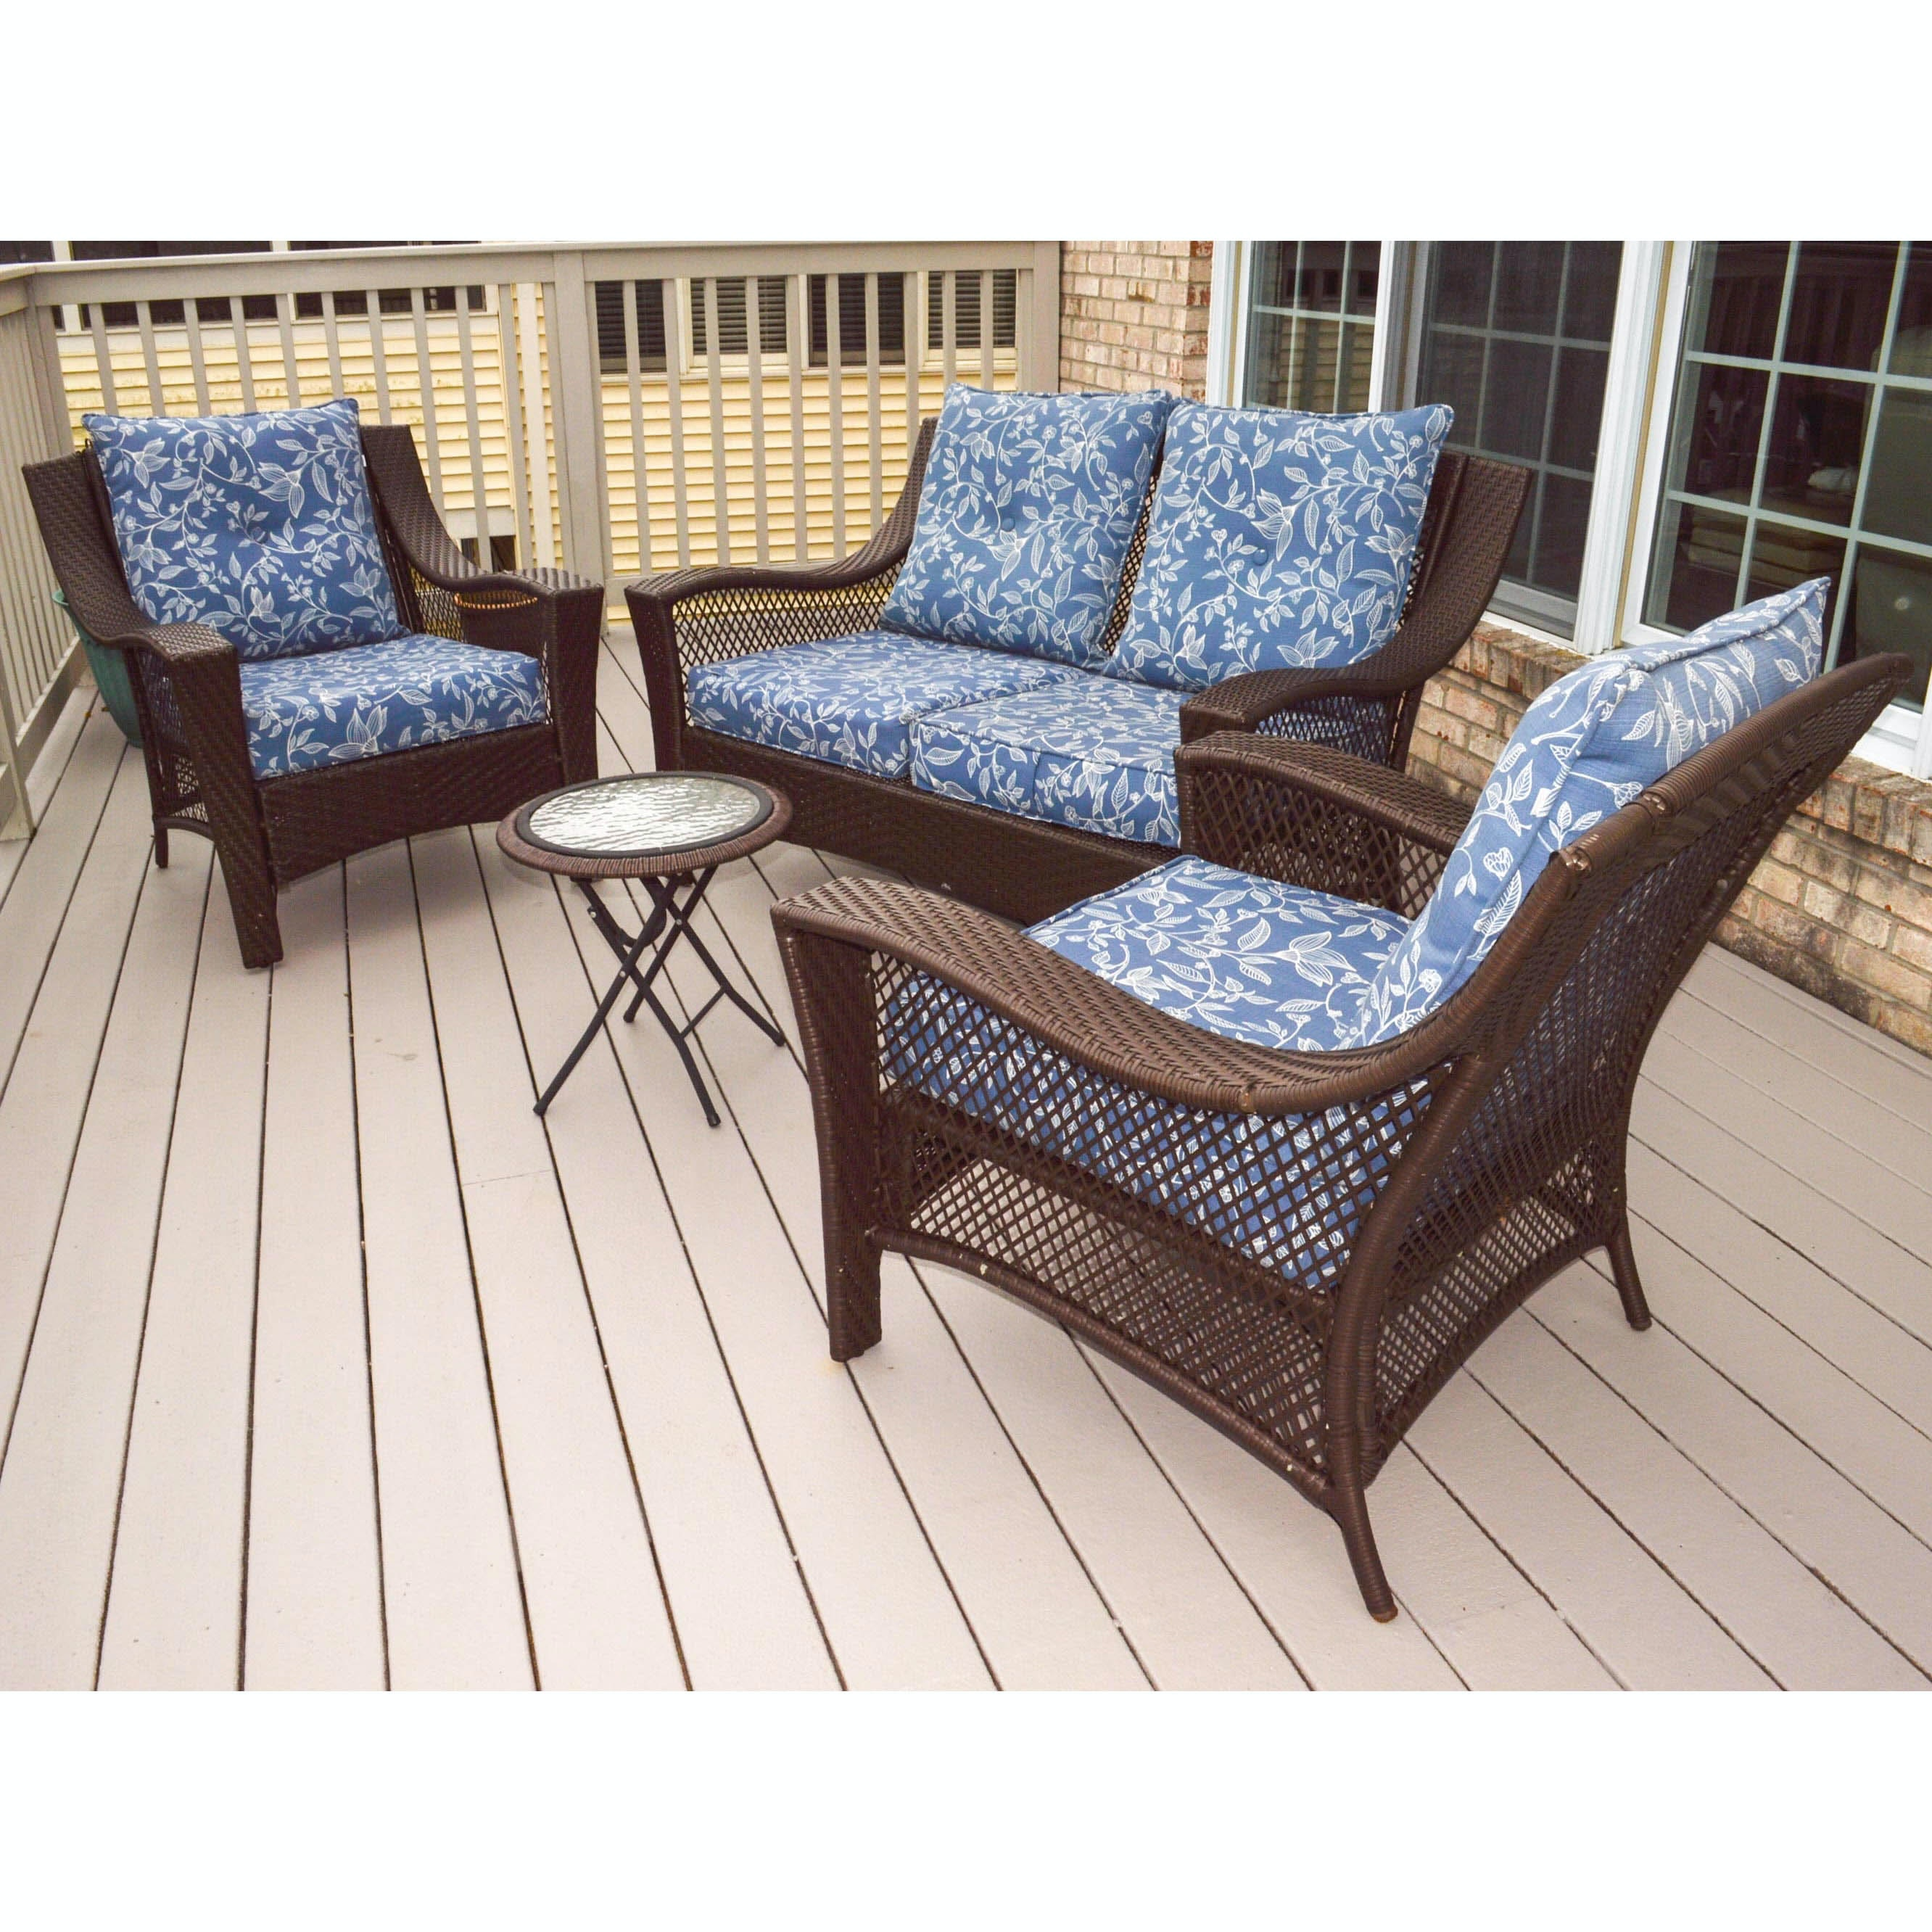 Four Piece Better Homes And Gardens Patio Furniture Set ...